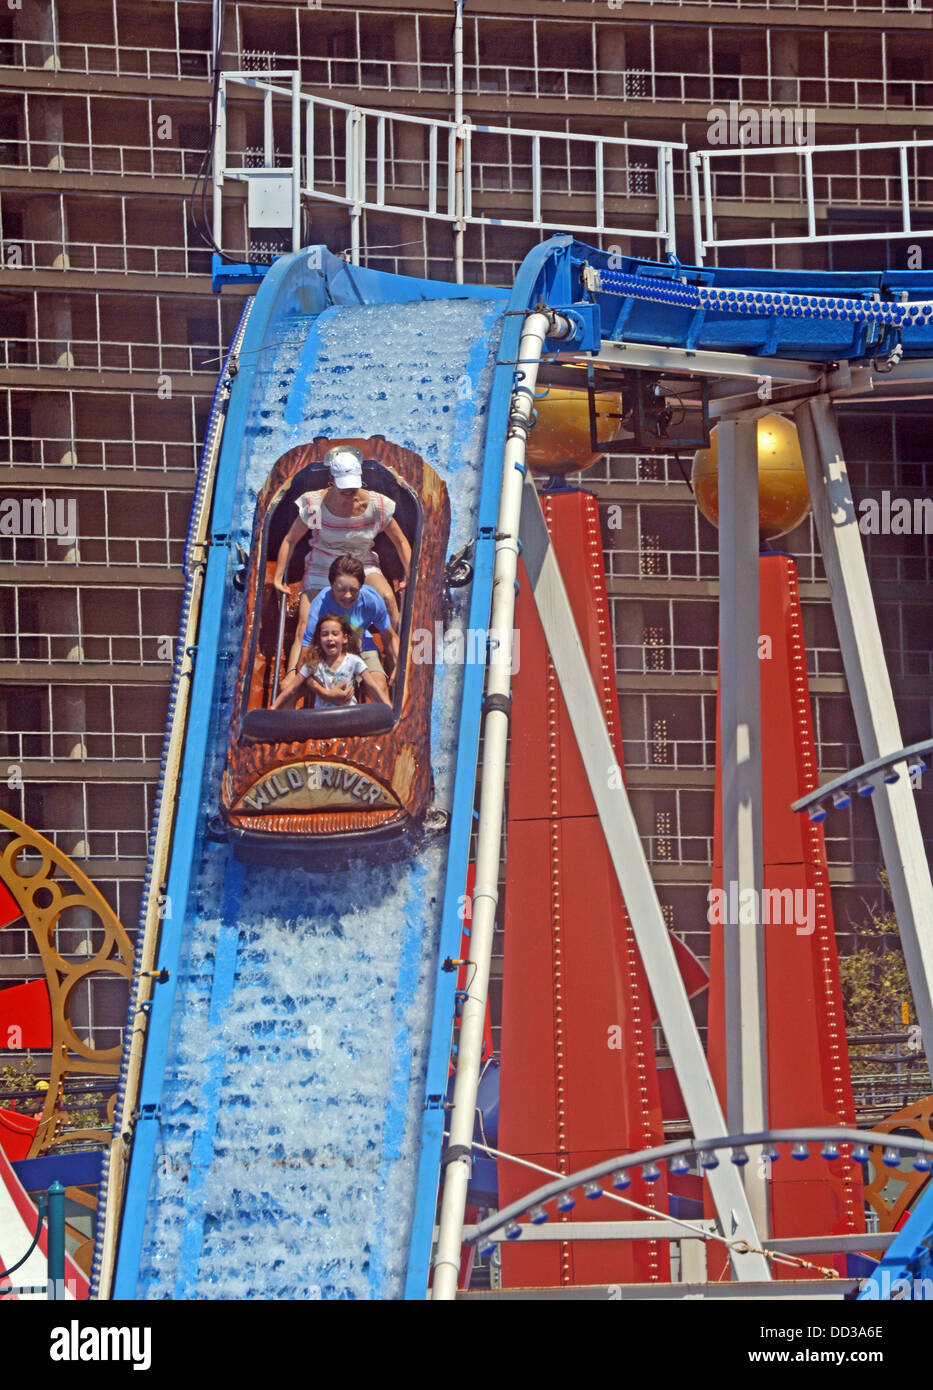 With apartment houses in the background a family rides the Wild River attraction at Luna Park in Coney Island, Brooklyn - Stock Image